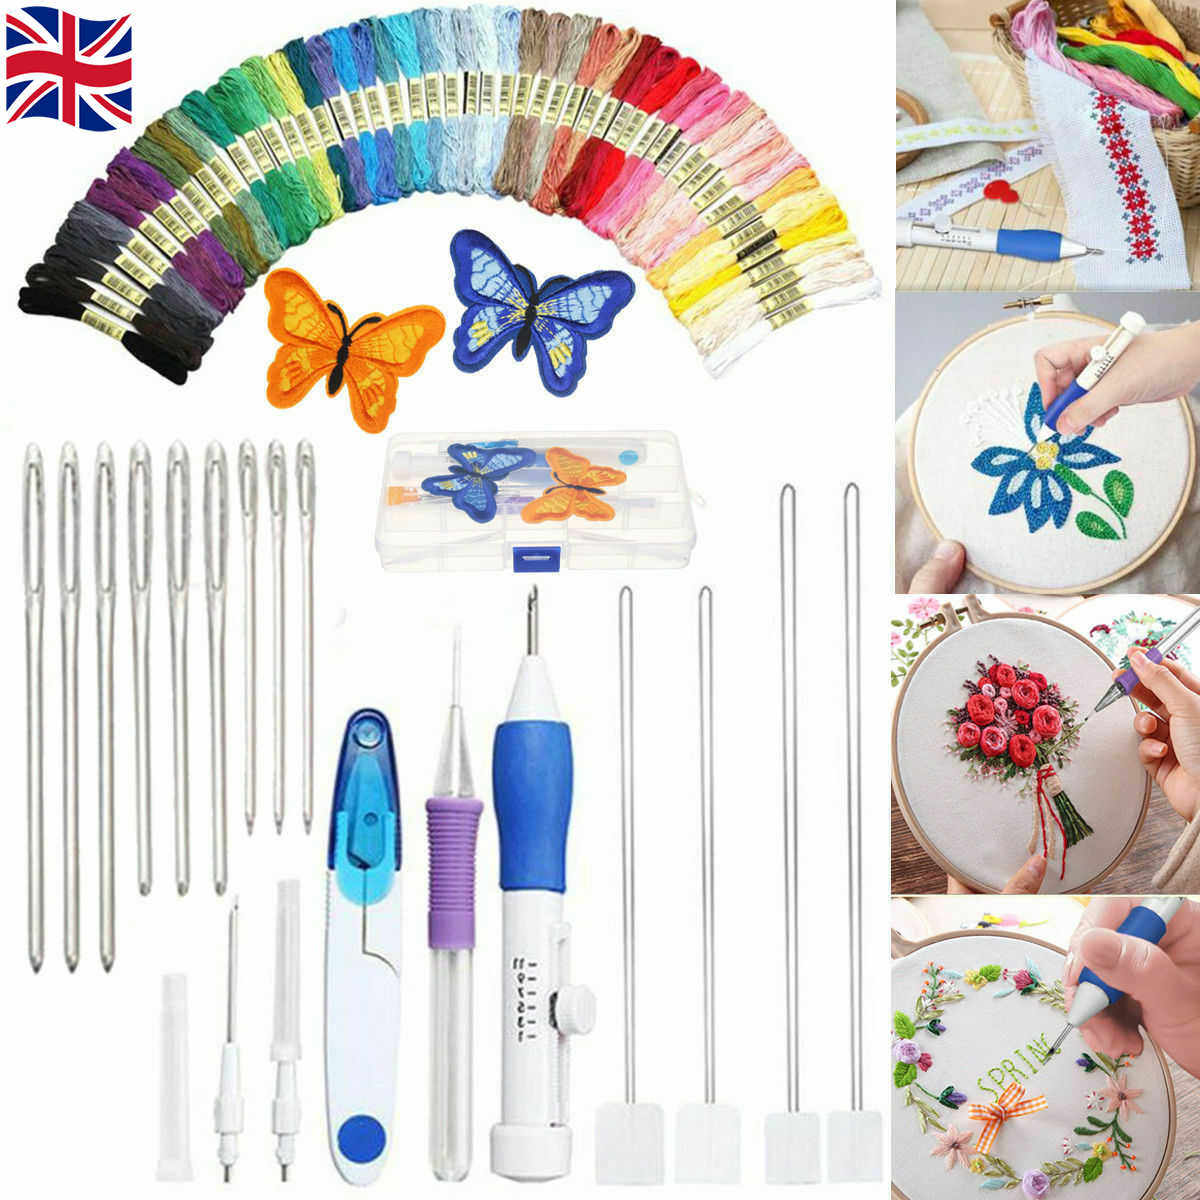 Embroidery Needle Punch Adjustable Needle Pen Kit Tool for DIY Craft